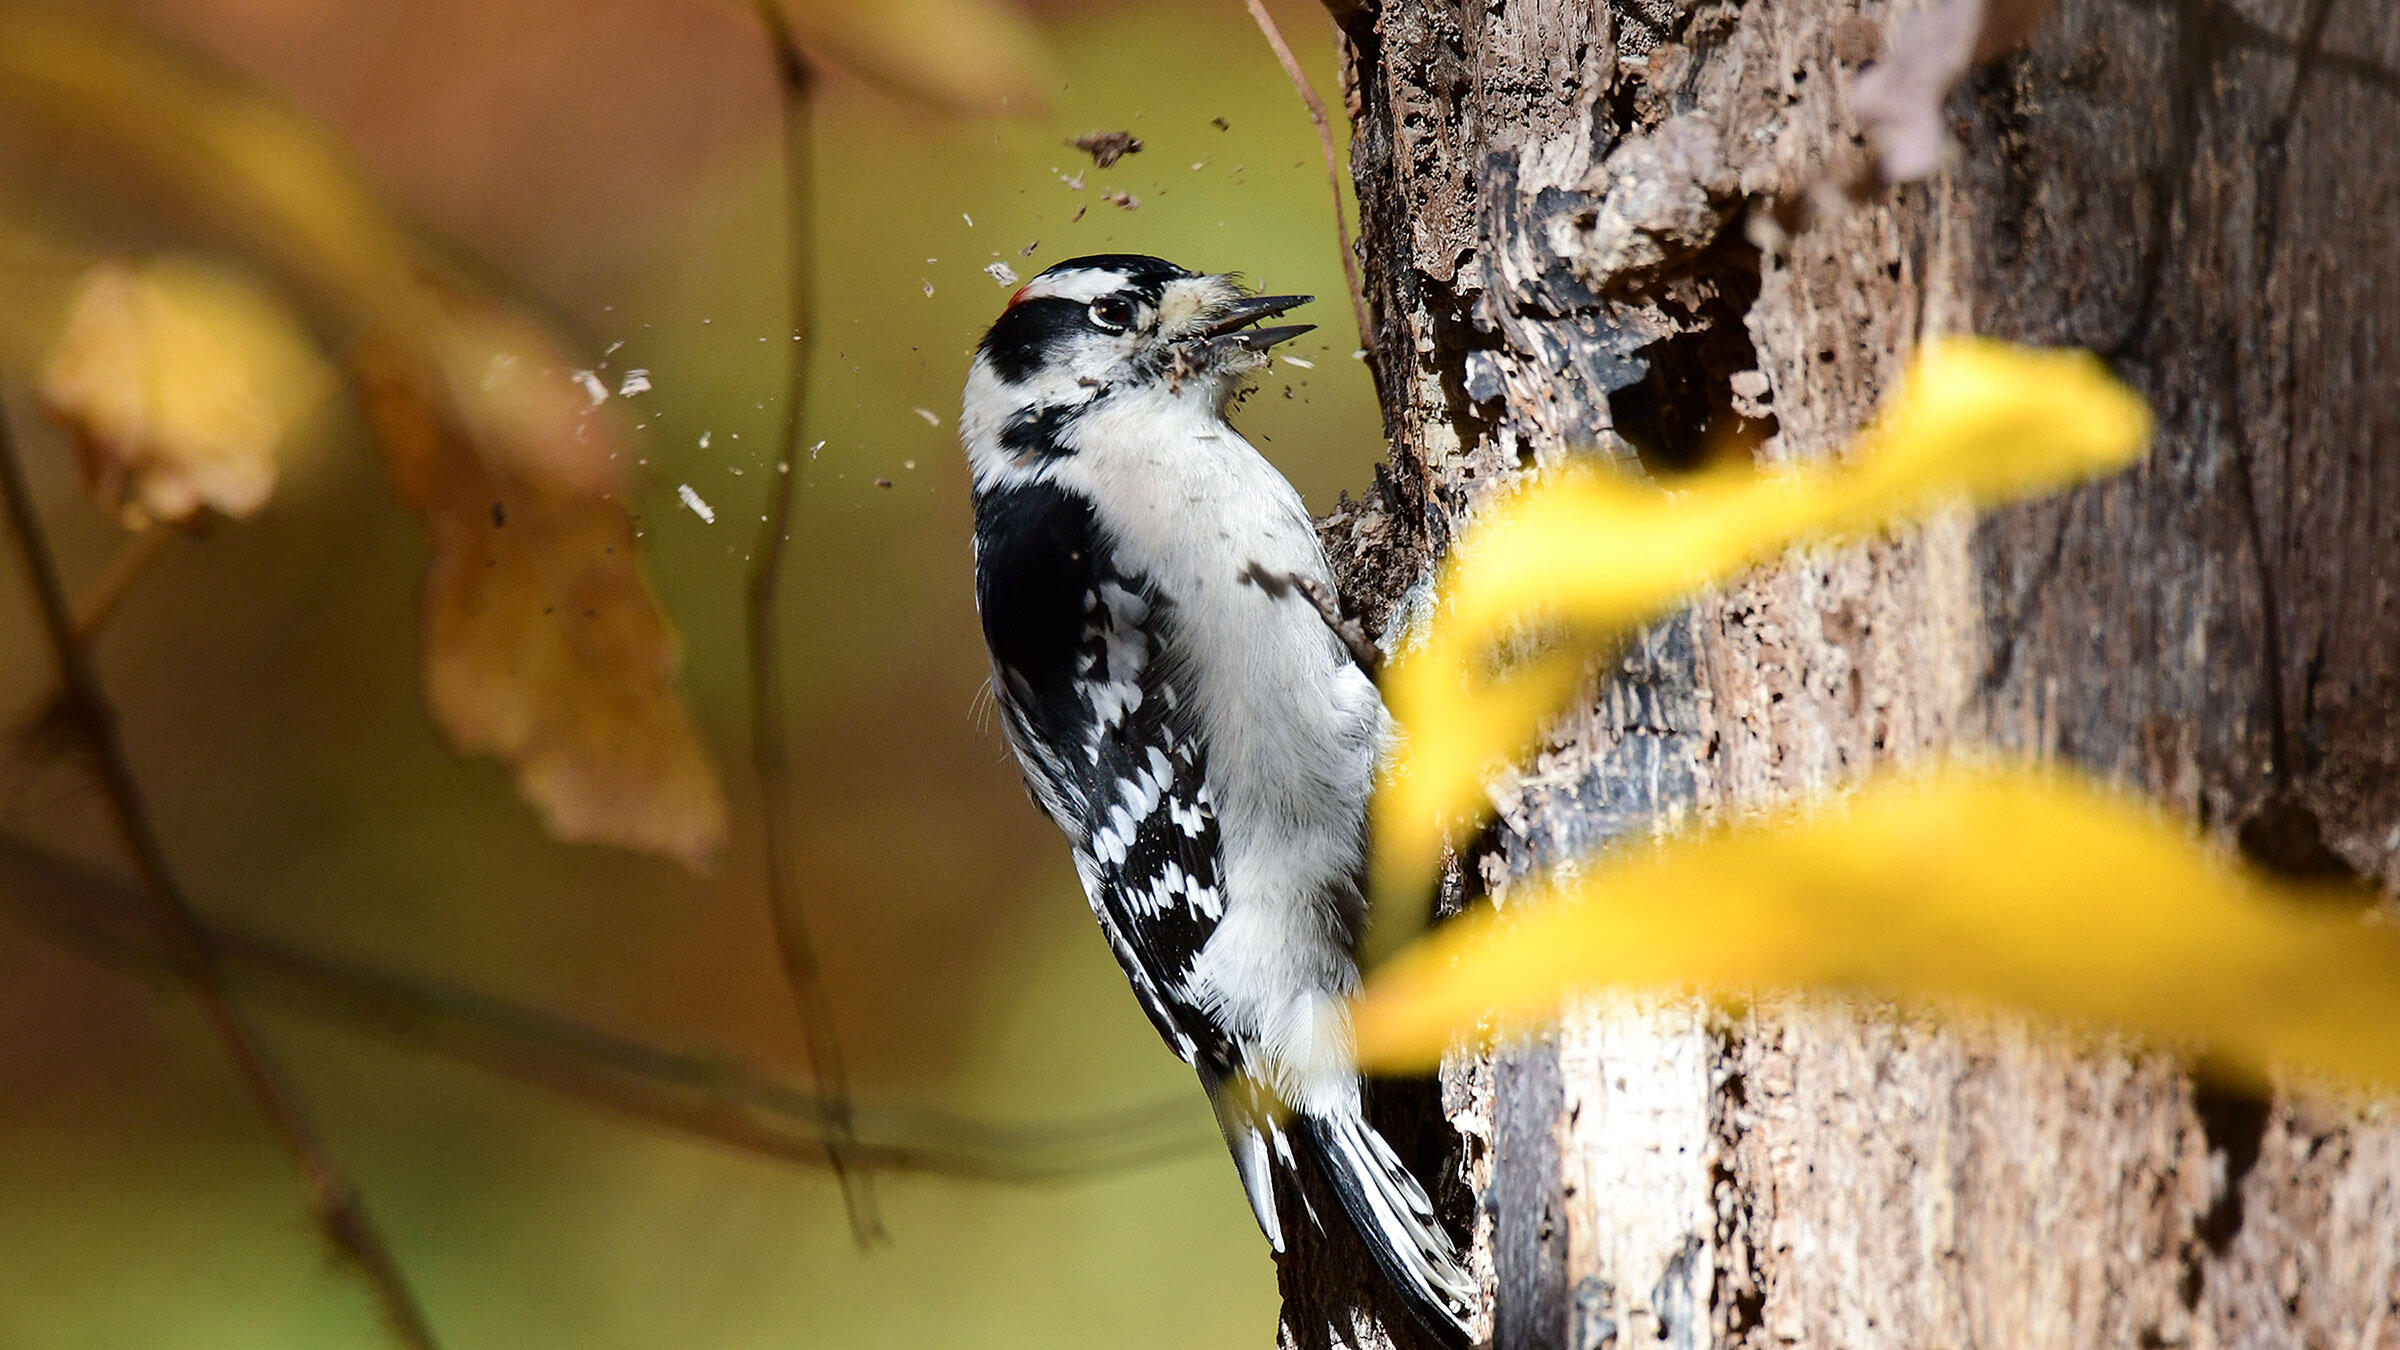 Even with their itty-bitty beaks, Downy Woodpeckers can do some damage to a tree trunk. But how do their brains hold up in the process? Jake Zadik/Audubon Photography Awards